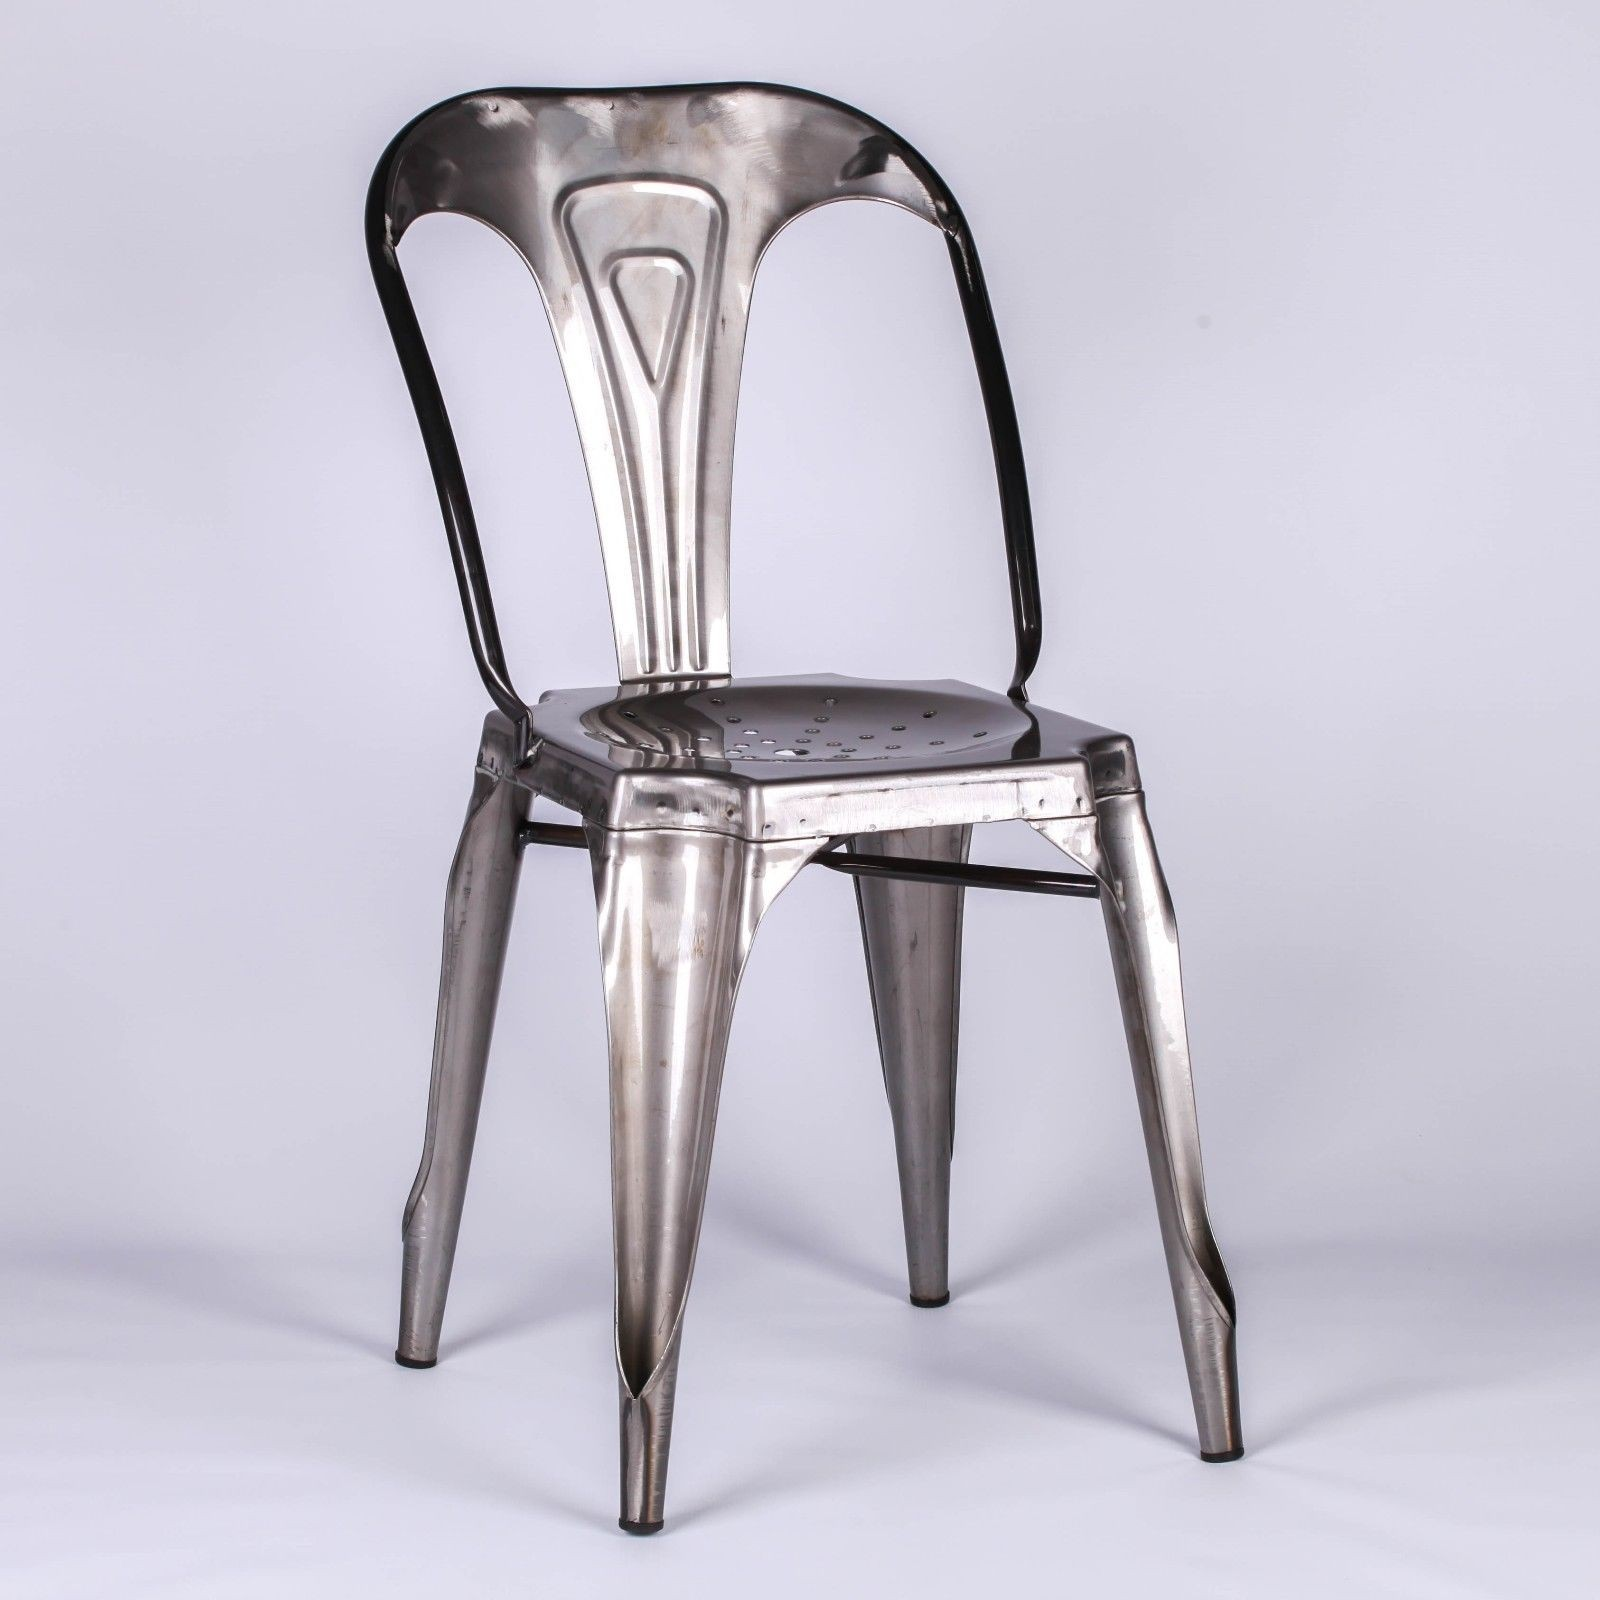 Industrial Look Chairs Tolix Inspired Industrial Style Cafe Metal Dining Chair